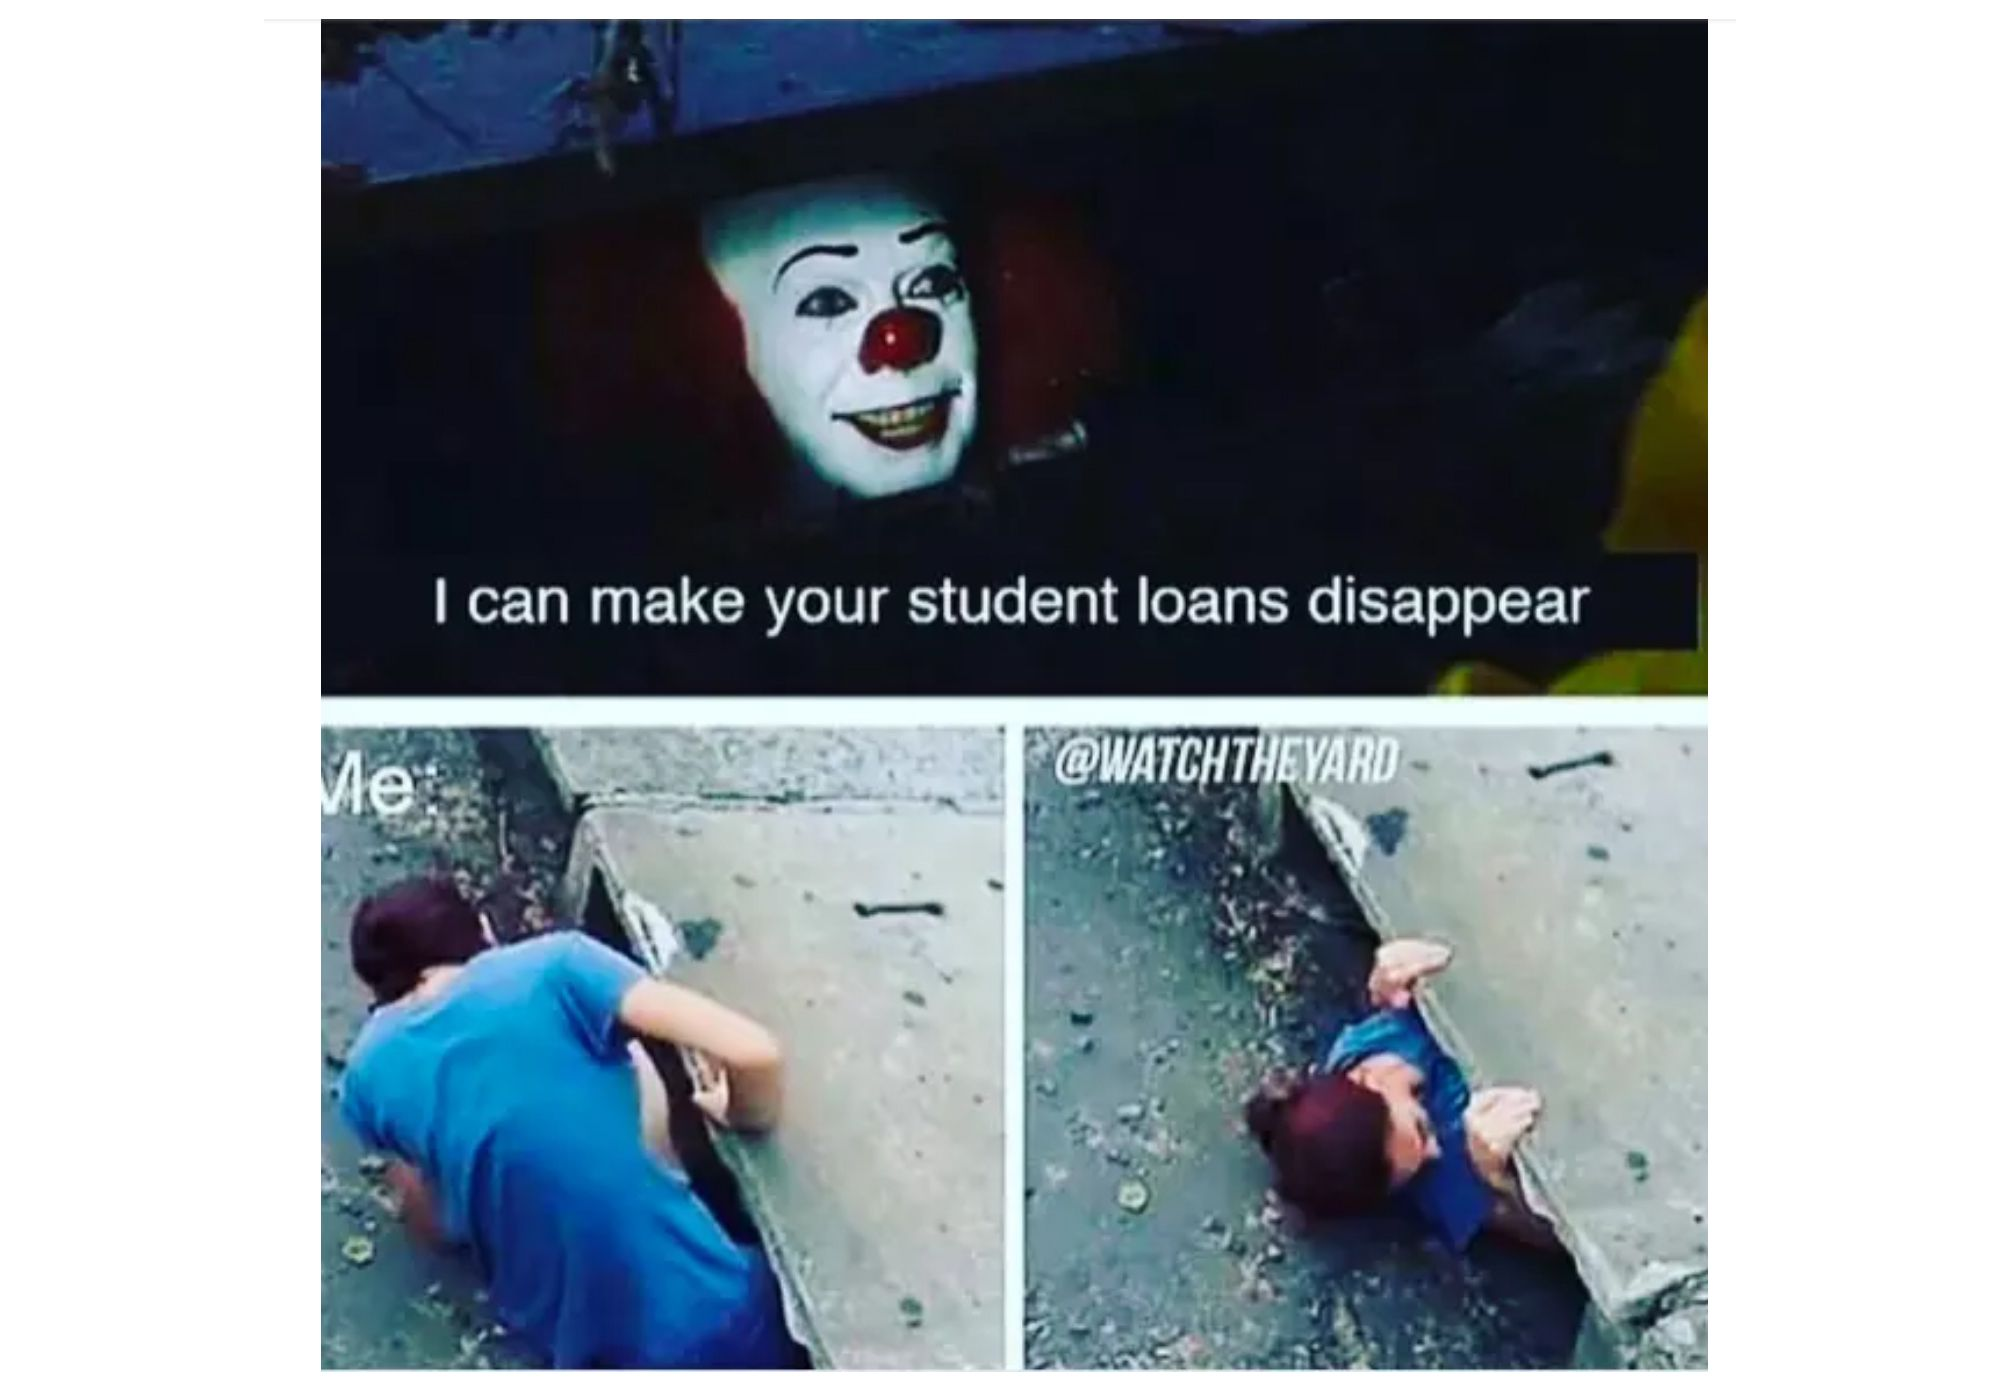 """Pennywise the clown's face in a sewer saying """"I can make your student loans disappear"""" with image beneath of someone crawling into the gutter"""